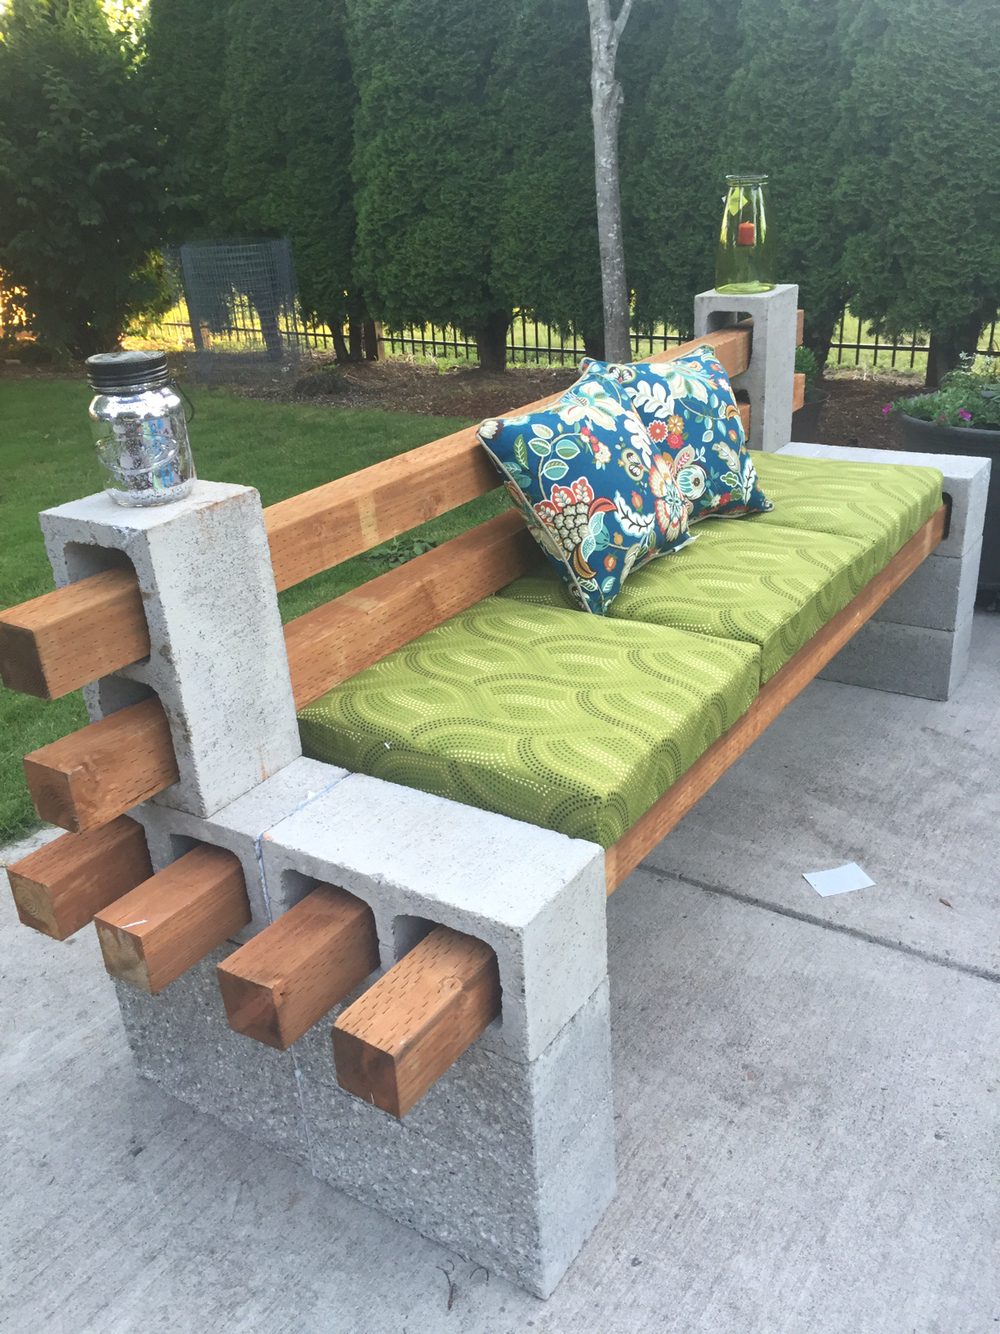 13 DIY Patio Furniture Ideas that Are Simple and Cheap ... on Build Backyard Patio id=19135